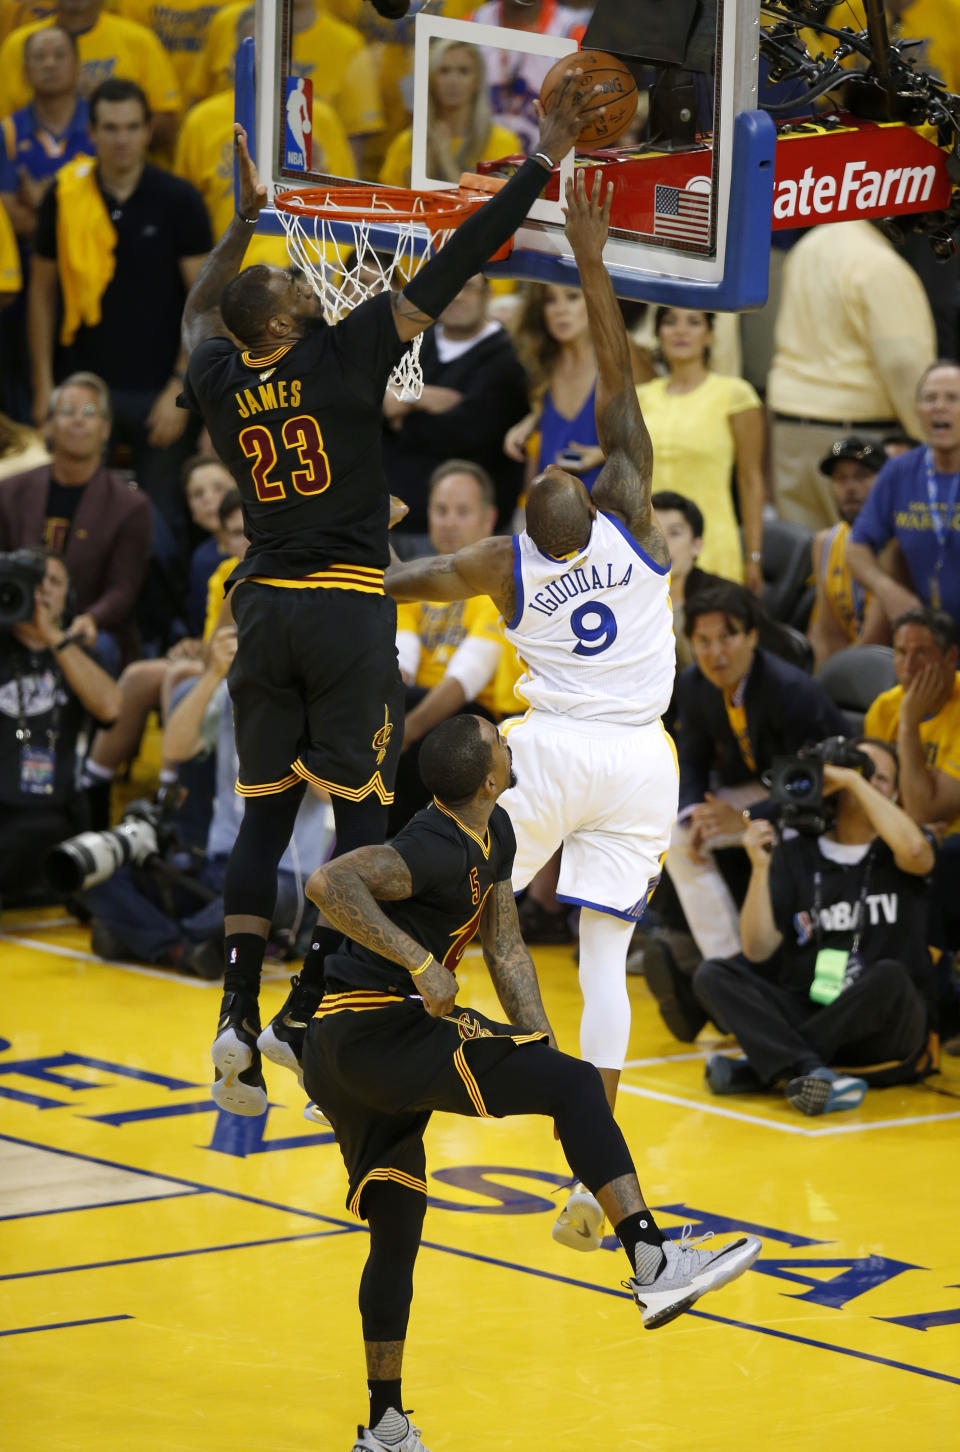 Cleveland Cavaliers' LeBron James (23) blocks a shot against Golden State Warriors' Andre Iguodala (9) in the fourth quarter of Game 7 of the NBA Finals at Oracle Arena in Oakland, Calif., on Sunday, June 19, 2016. (Nhat V. Meyer/Bay Area News Group) (Photo by MediaNews Group/Bay Area News via Getty Images)